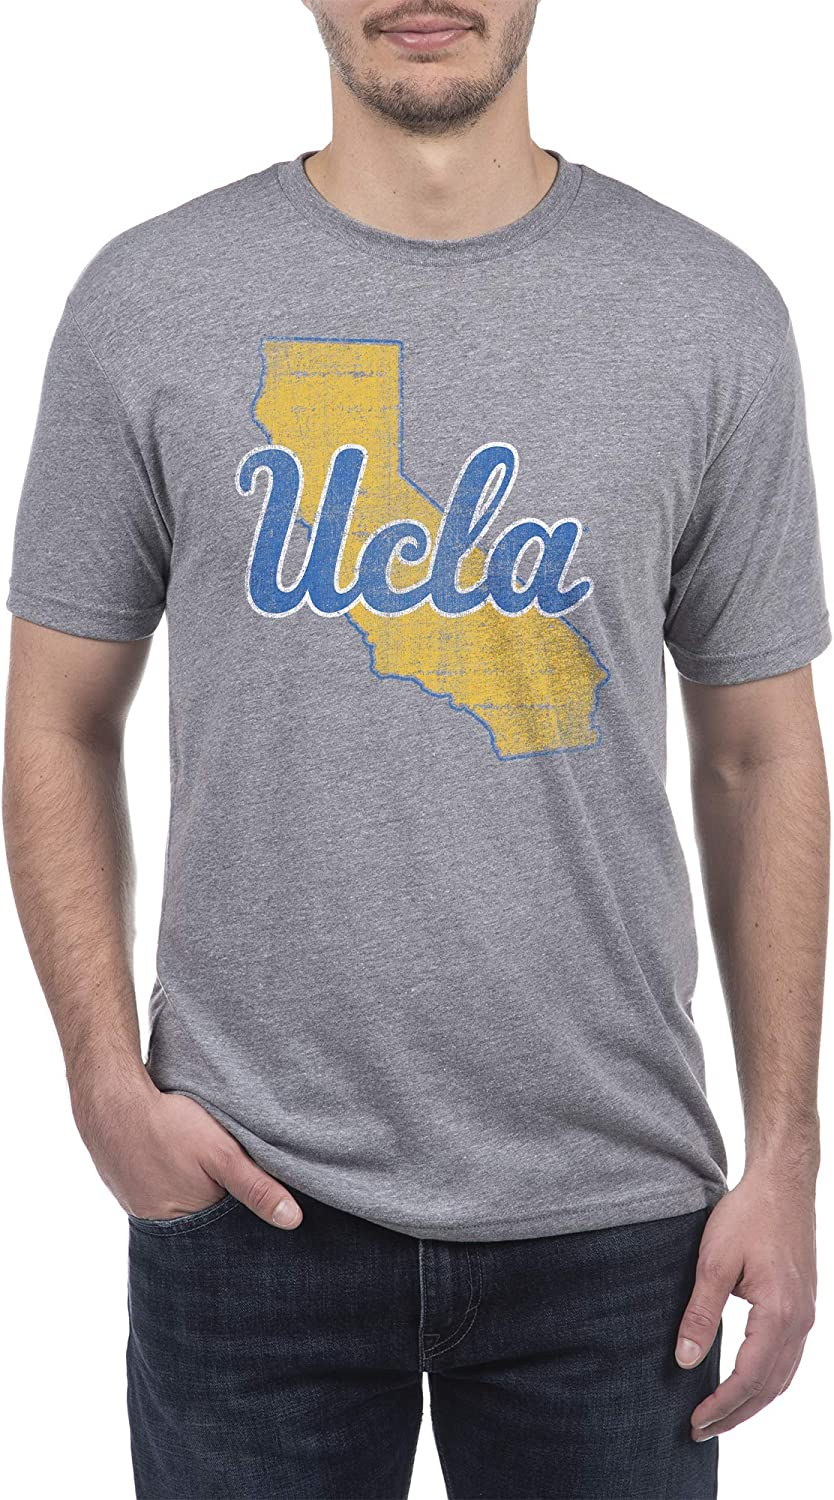 Top of the World NCAA Mens Modern Fit Premium Tri-Blend Short Sleeve Gray Heather Distressed State Icon Tee